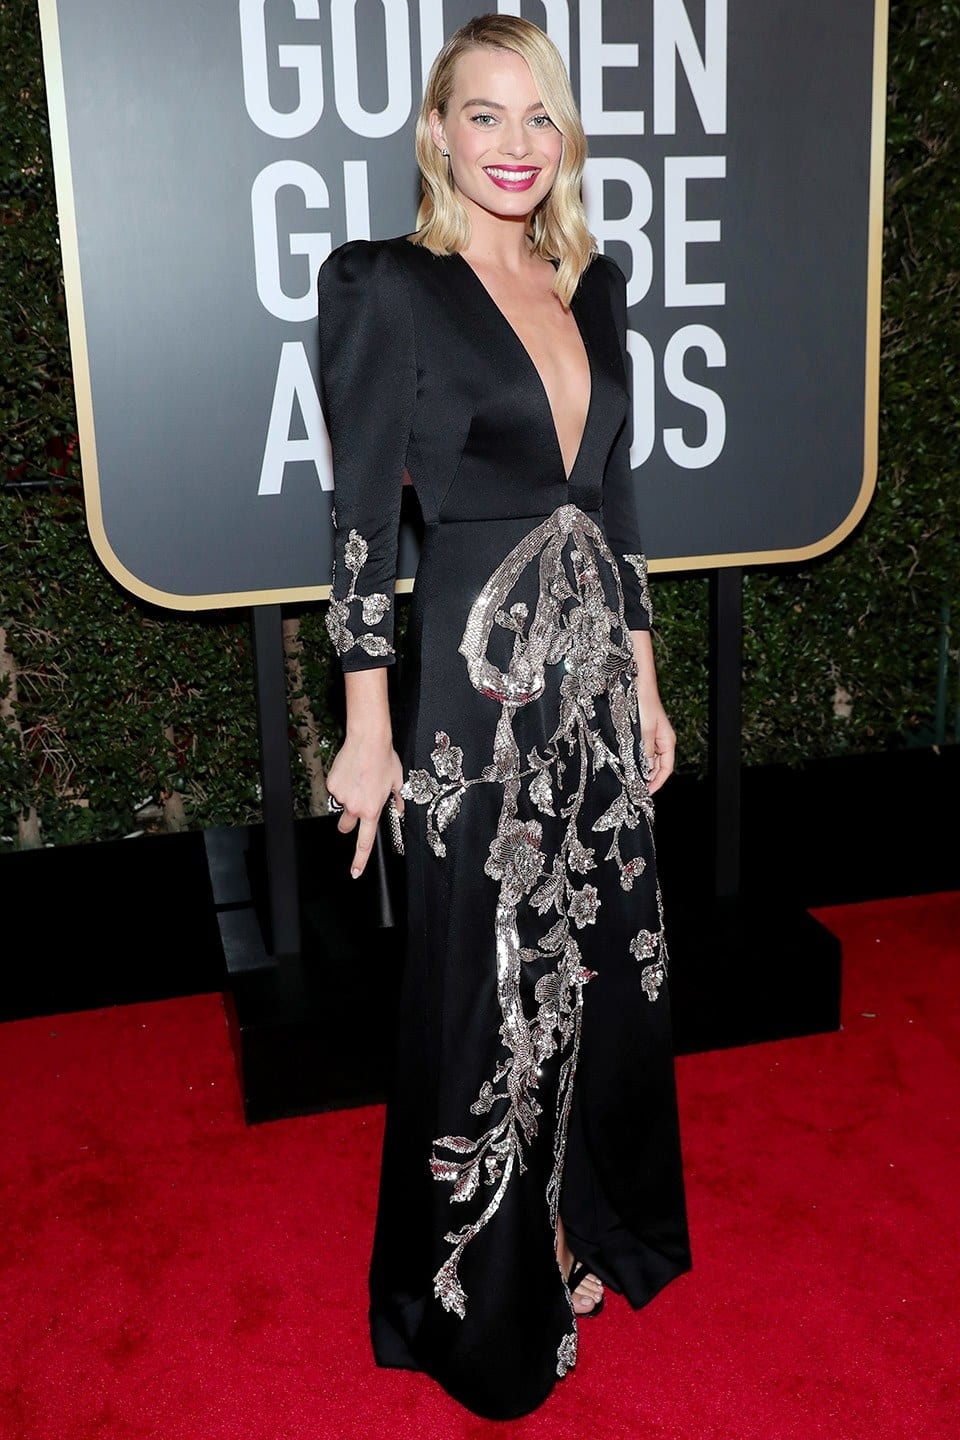 GOLDEN GLOBES, BEST DRESSED, GOWNS, STYLE, FASHION, TIME'S UP